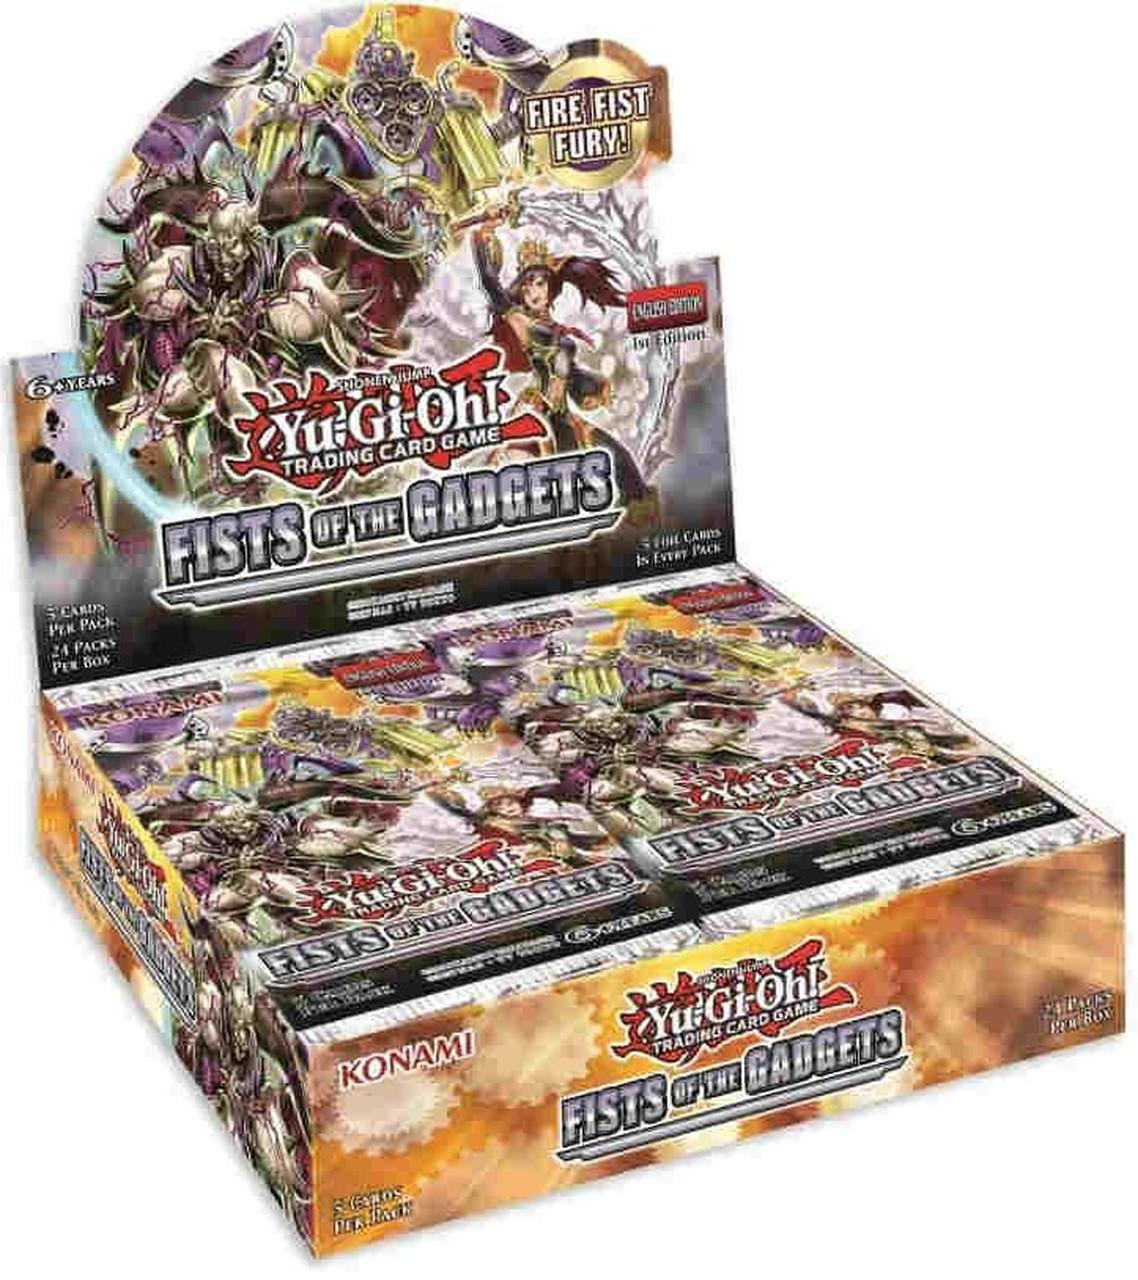 Yu Gi Oh Fist of the Gadgets Booster Box